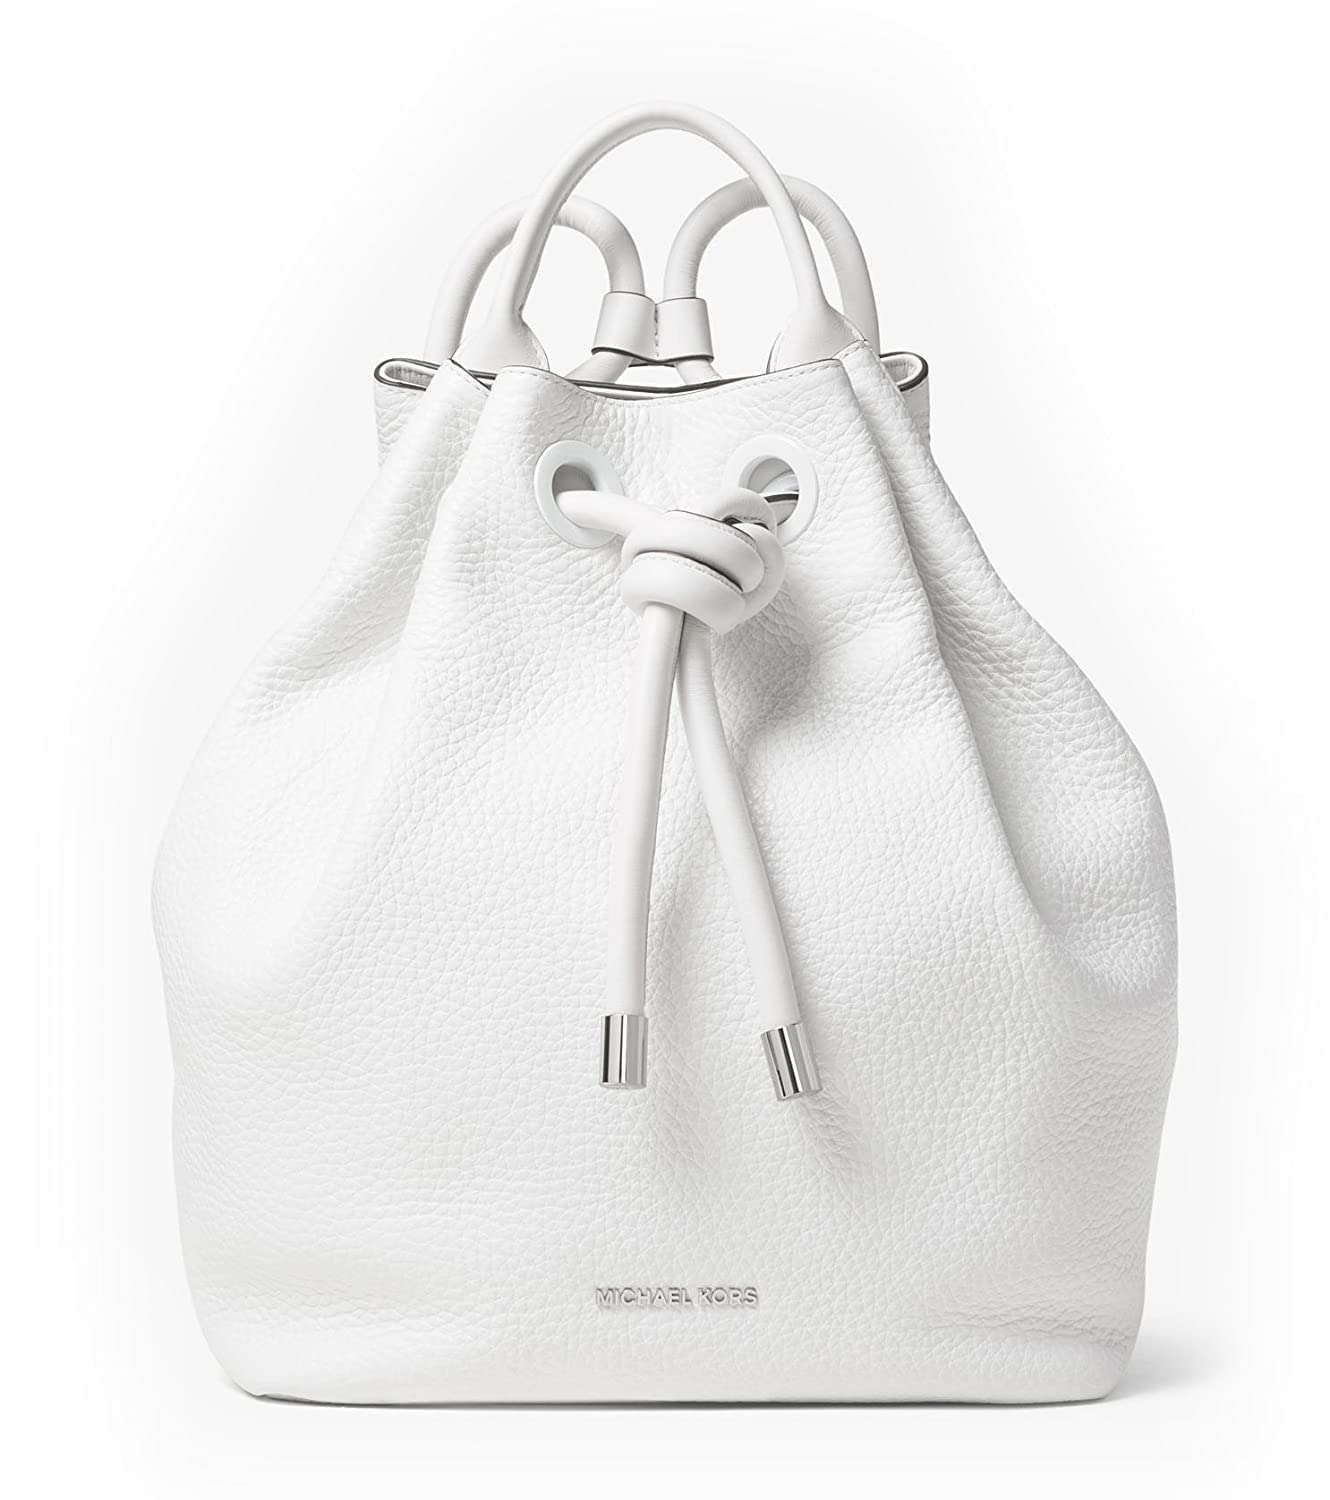 d8055417f0d4e7 hot sale 2017 Michael Kors Backpack Dalia Large Leather Back Pack In Optic  White